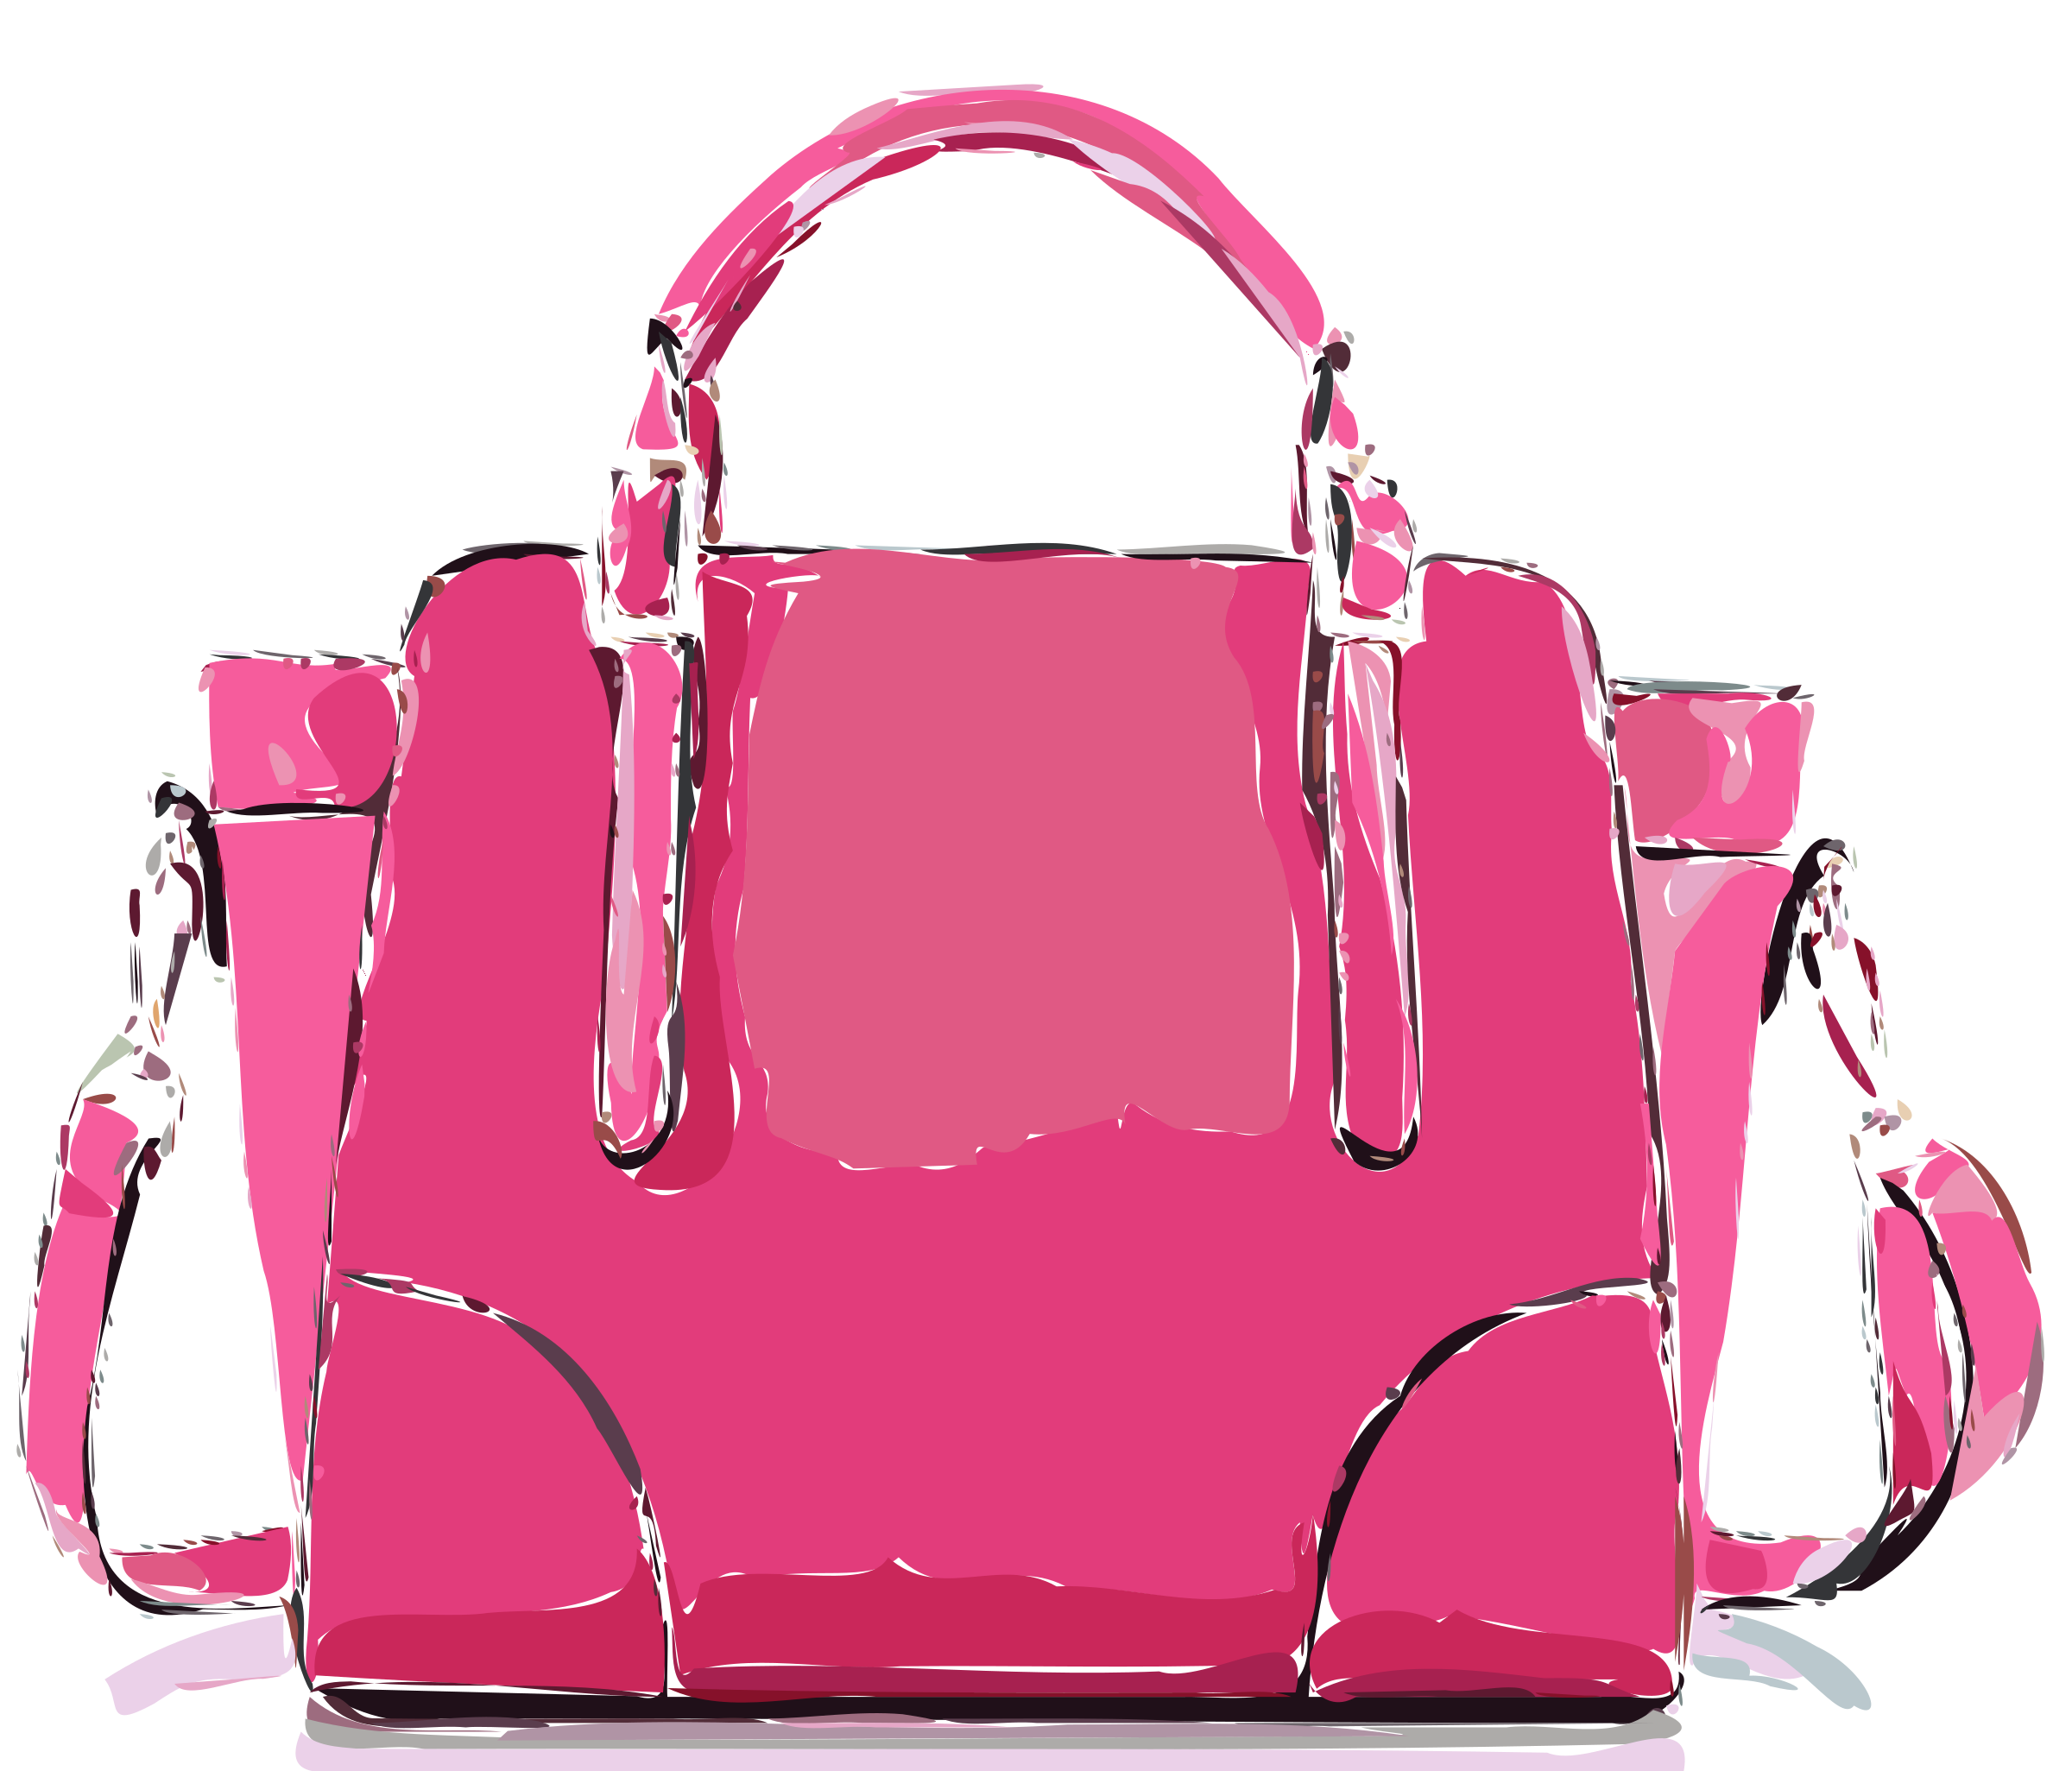 Pinky s bag without. Clipart backpack red purse